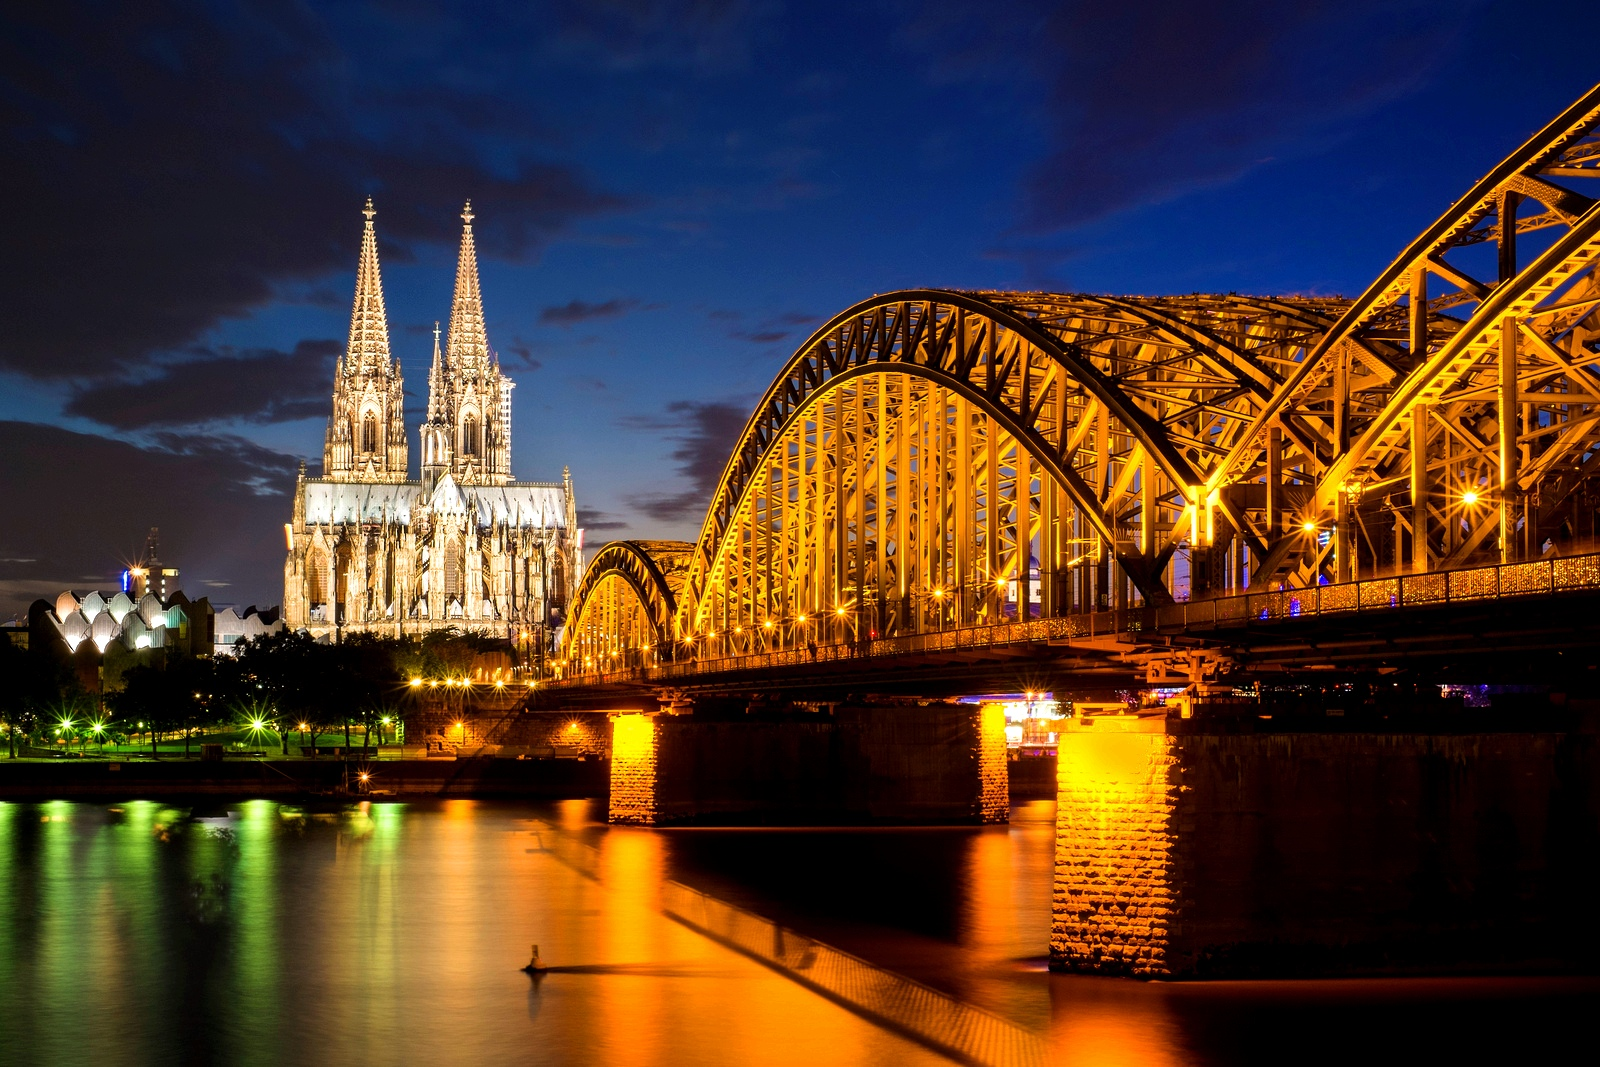 Ger._Cologne_Cathe